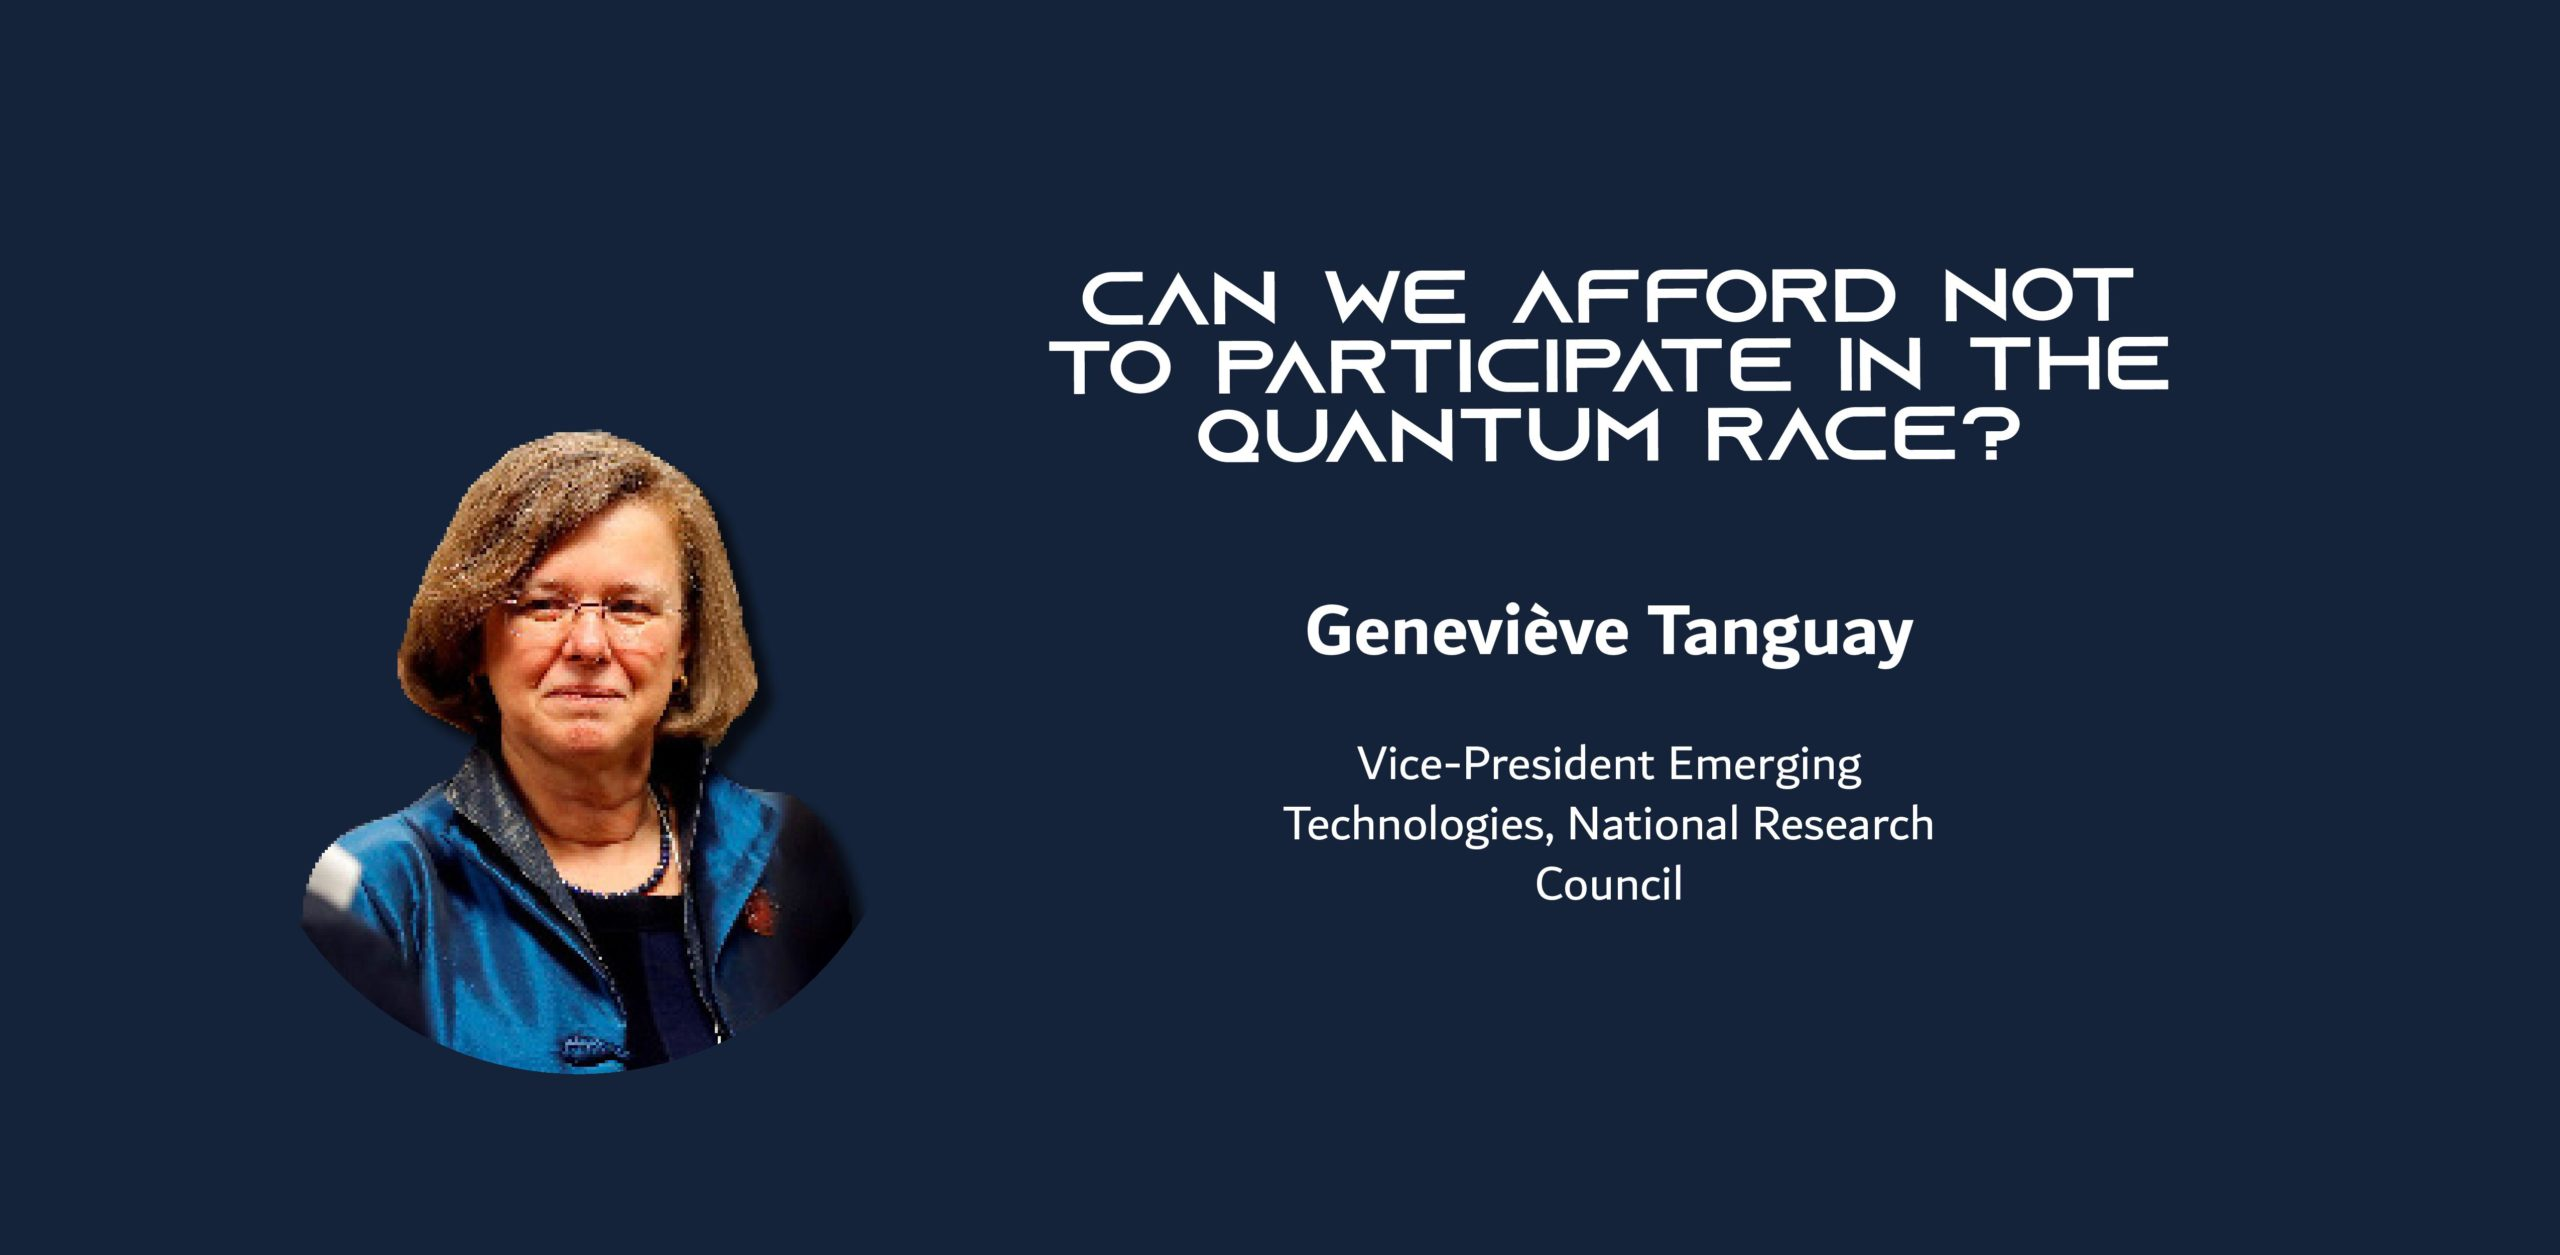 A photo of a woman on a blue background with the text: Can we afford not to participate in the quantum race? Geneviève Tanguay Vice-President Emerging Technologies, National Research Council